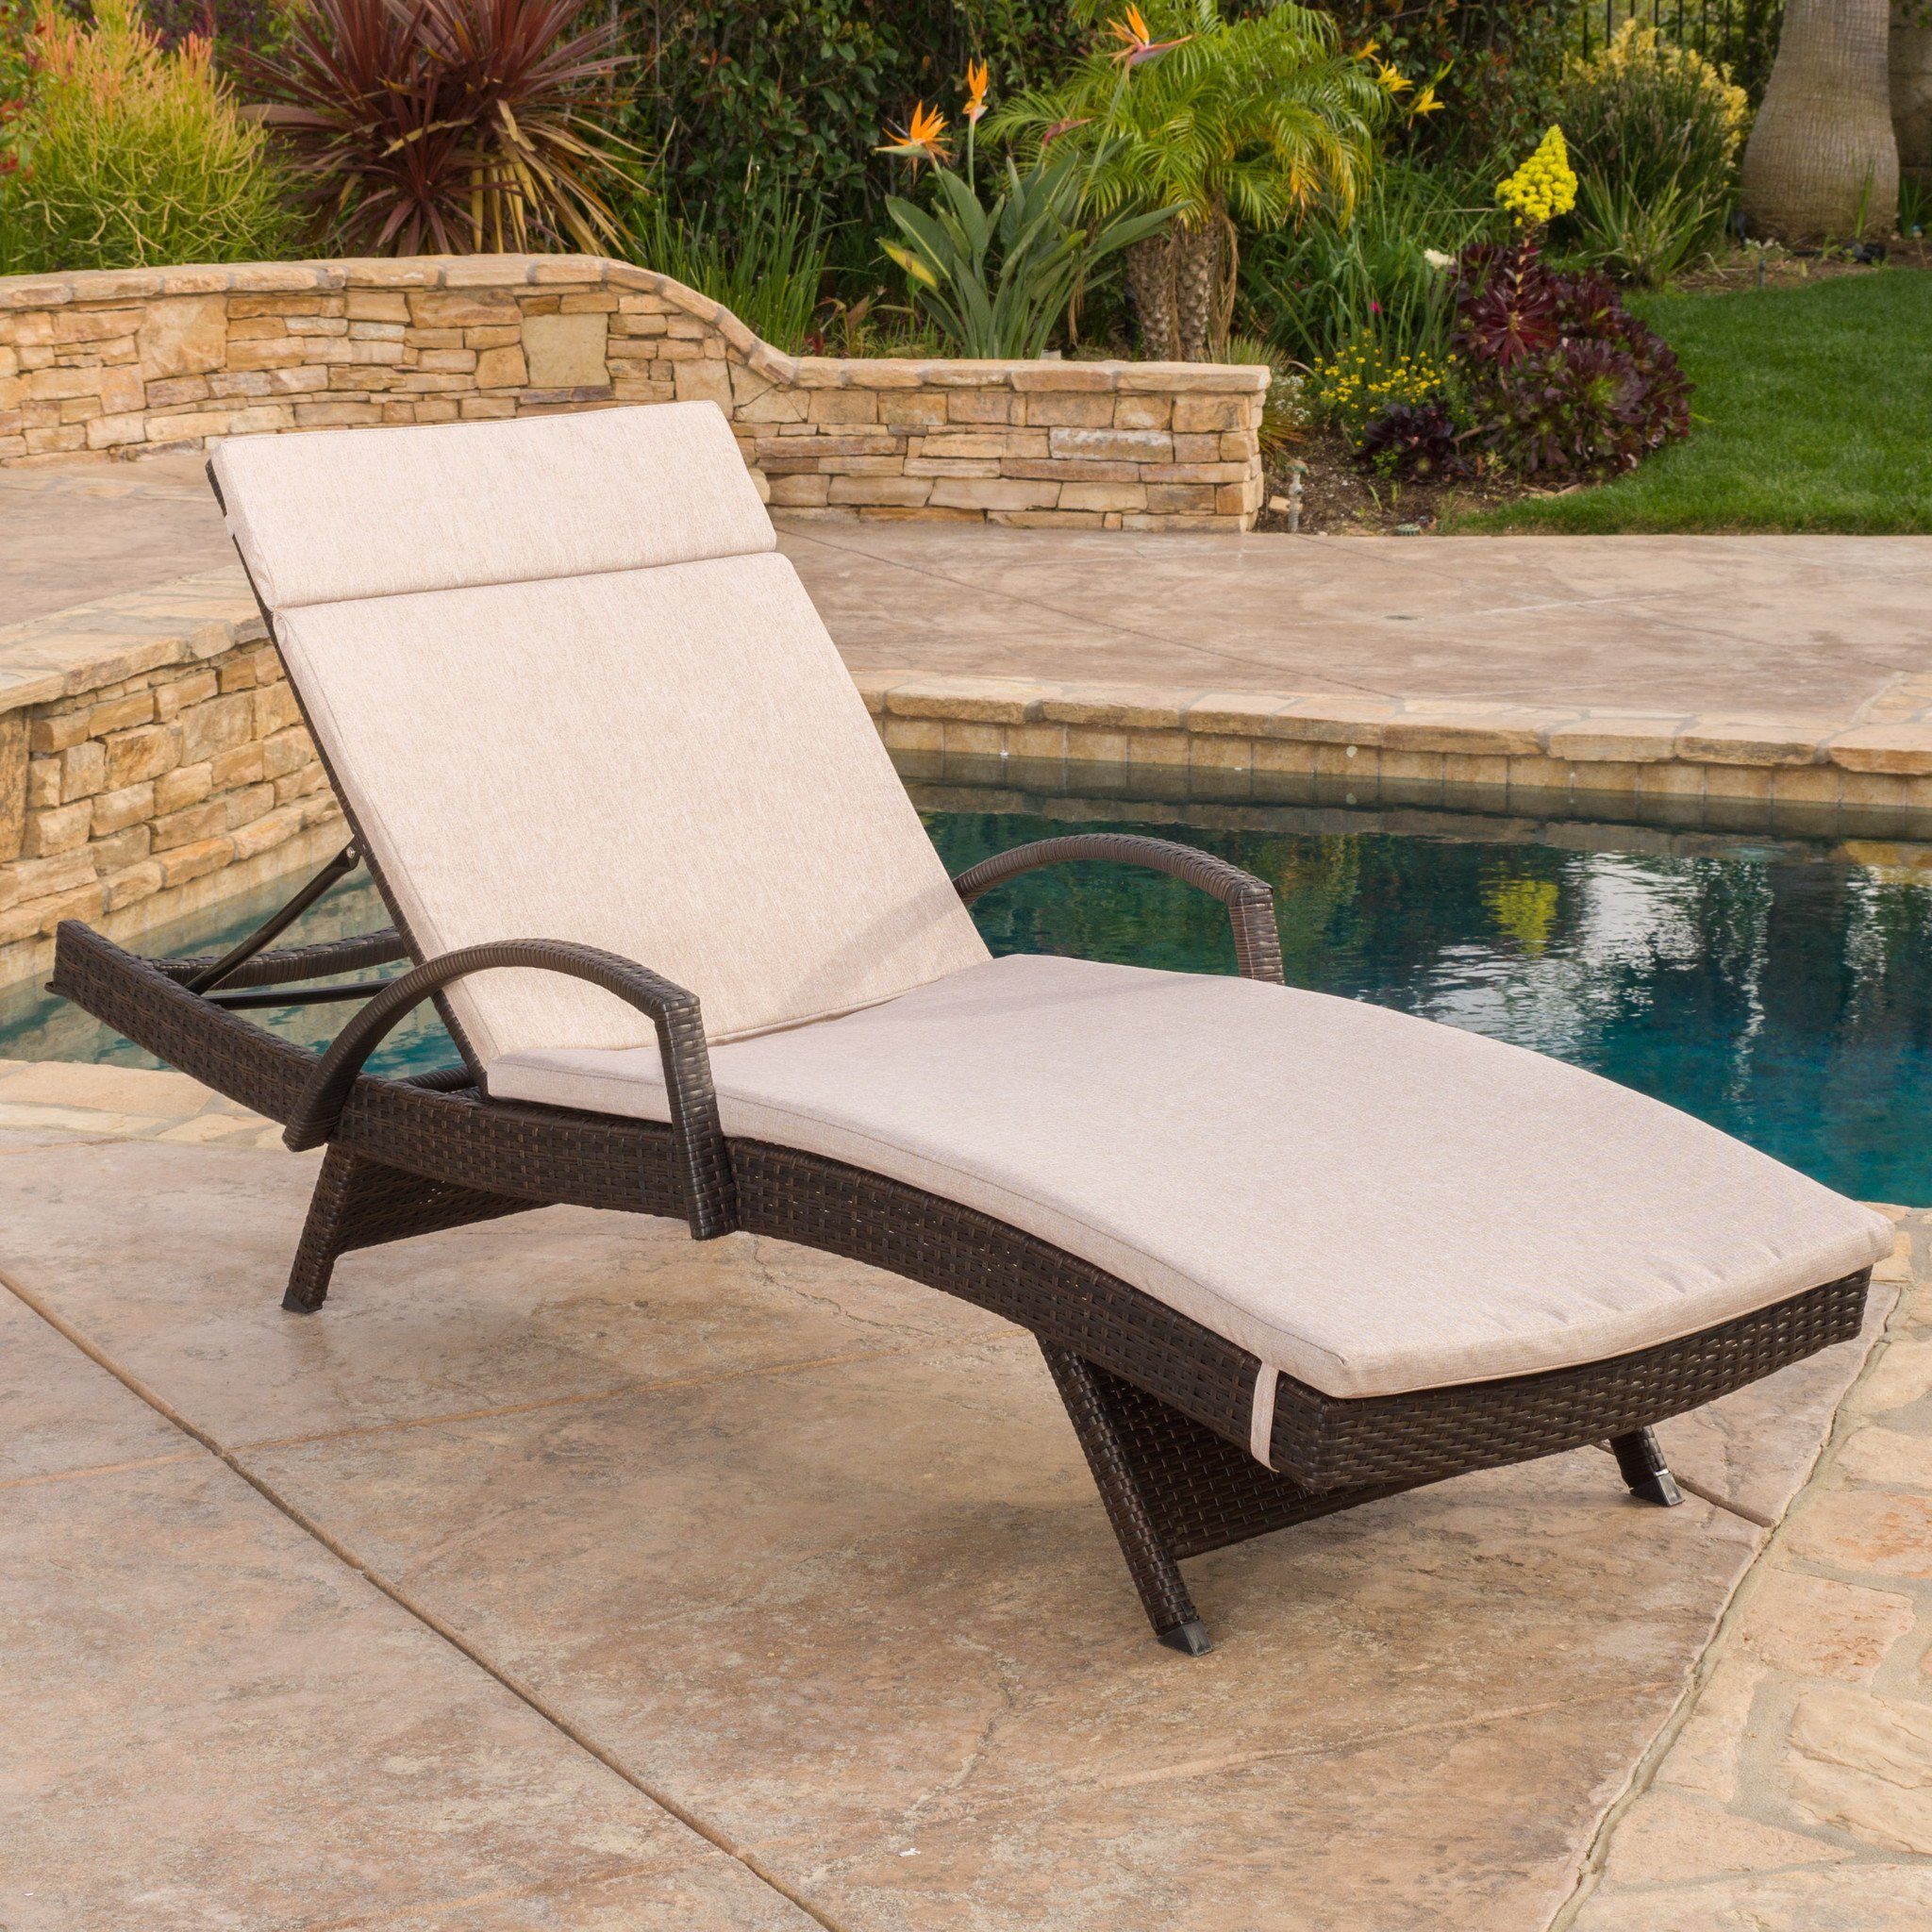 chaise lounge chair cushions. Lakeport Outdoor Adjustable Armed Chaise Lounge Chair W/ Cushion Cushions